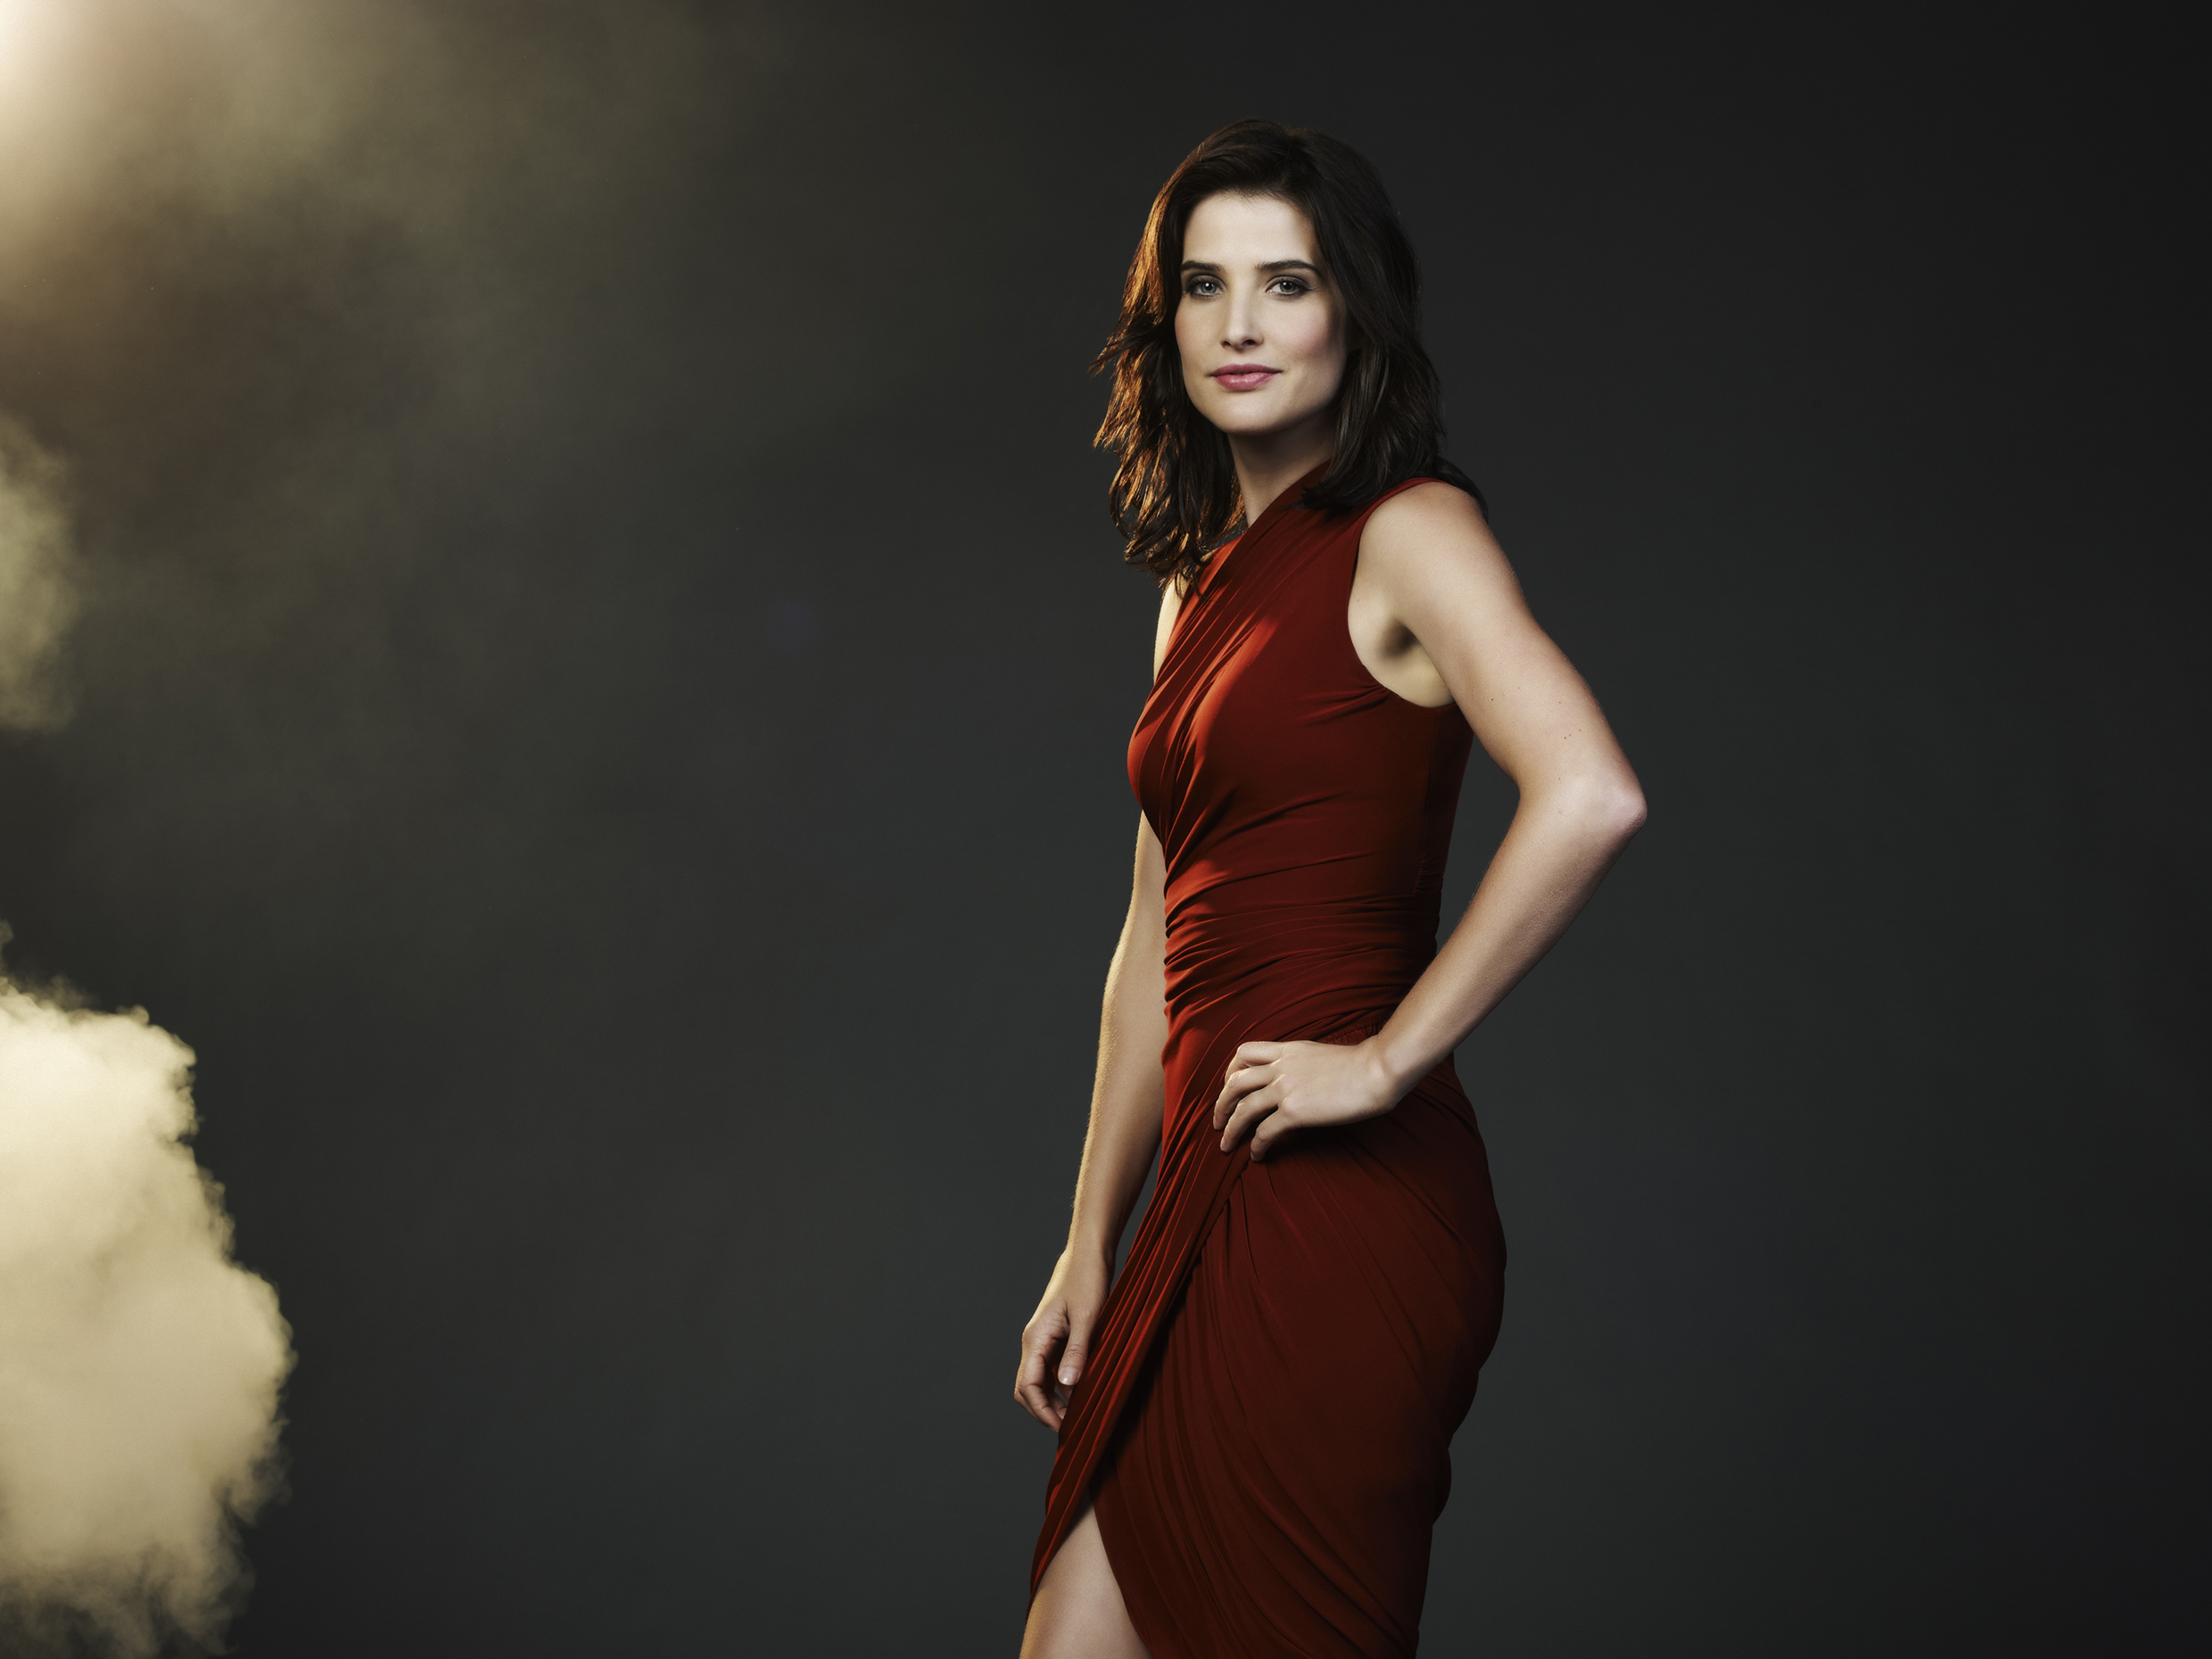 cobie smulders wallpapers - photo #24